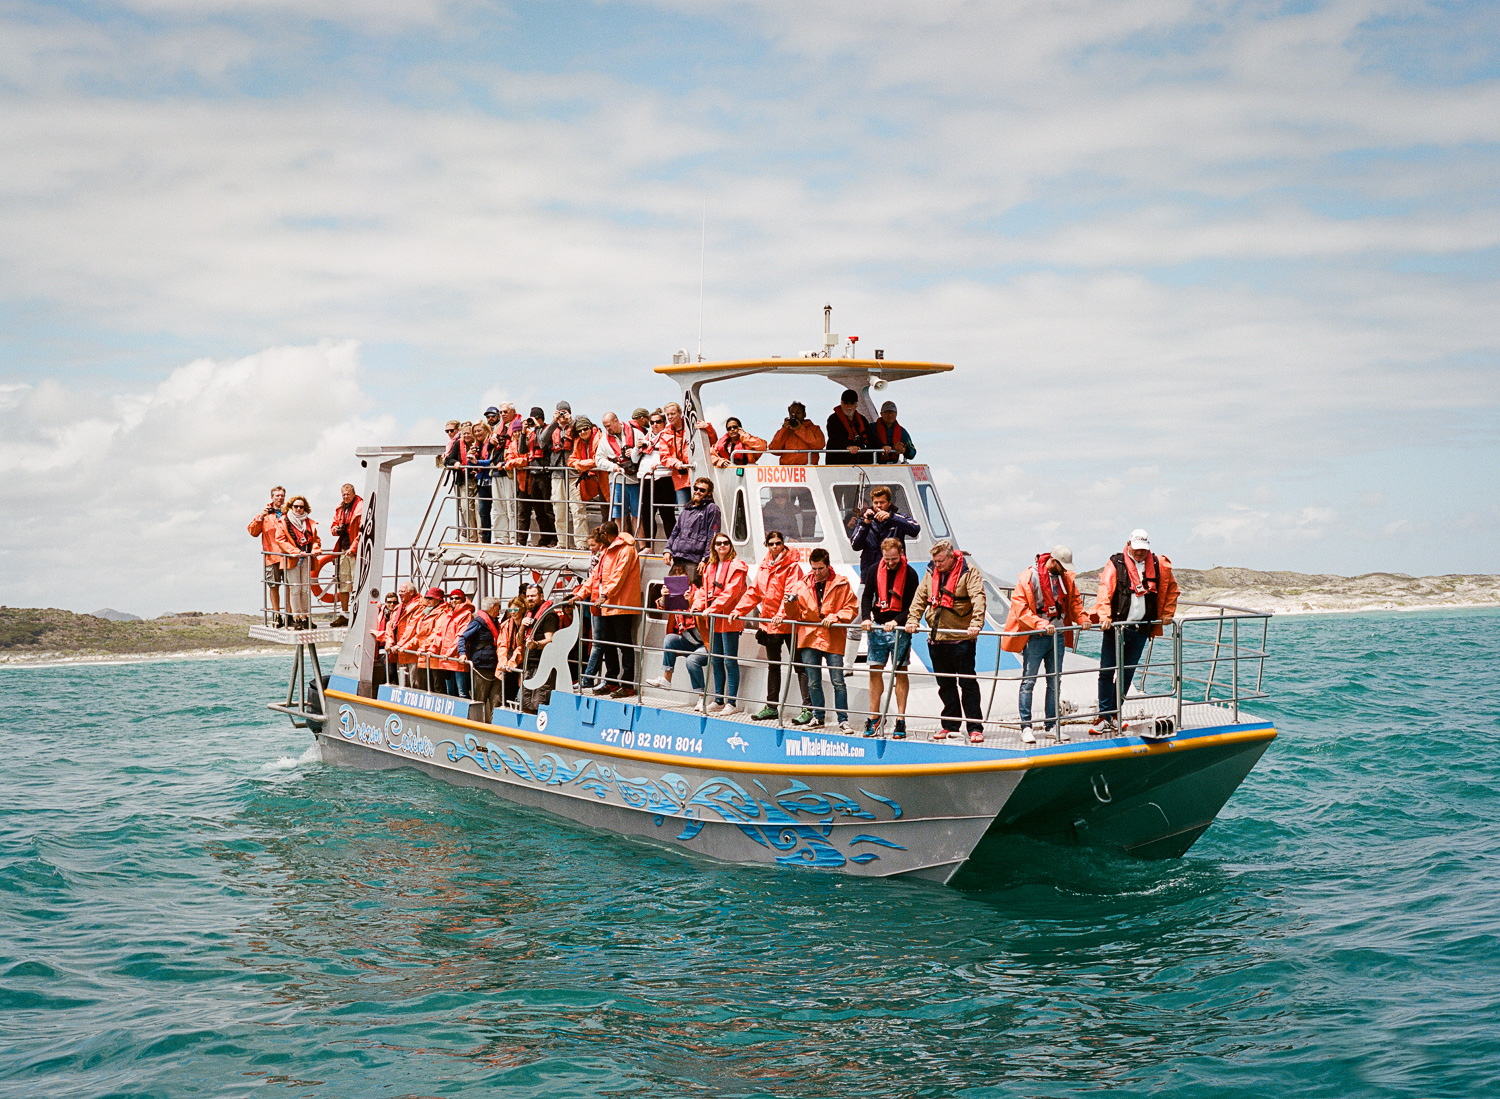 This is the boat for high IQ people who don't muck around with wetsuits and underwater cages. They came to watch our expert chummer work his magic.